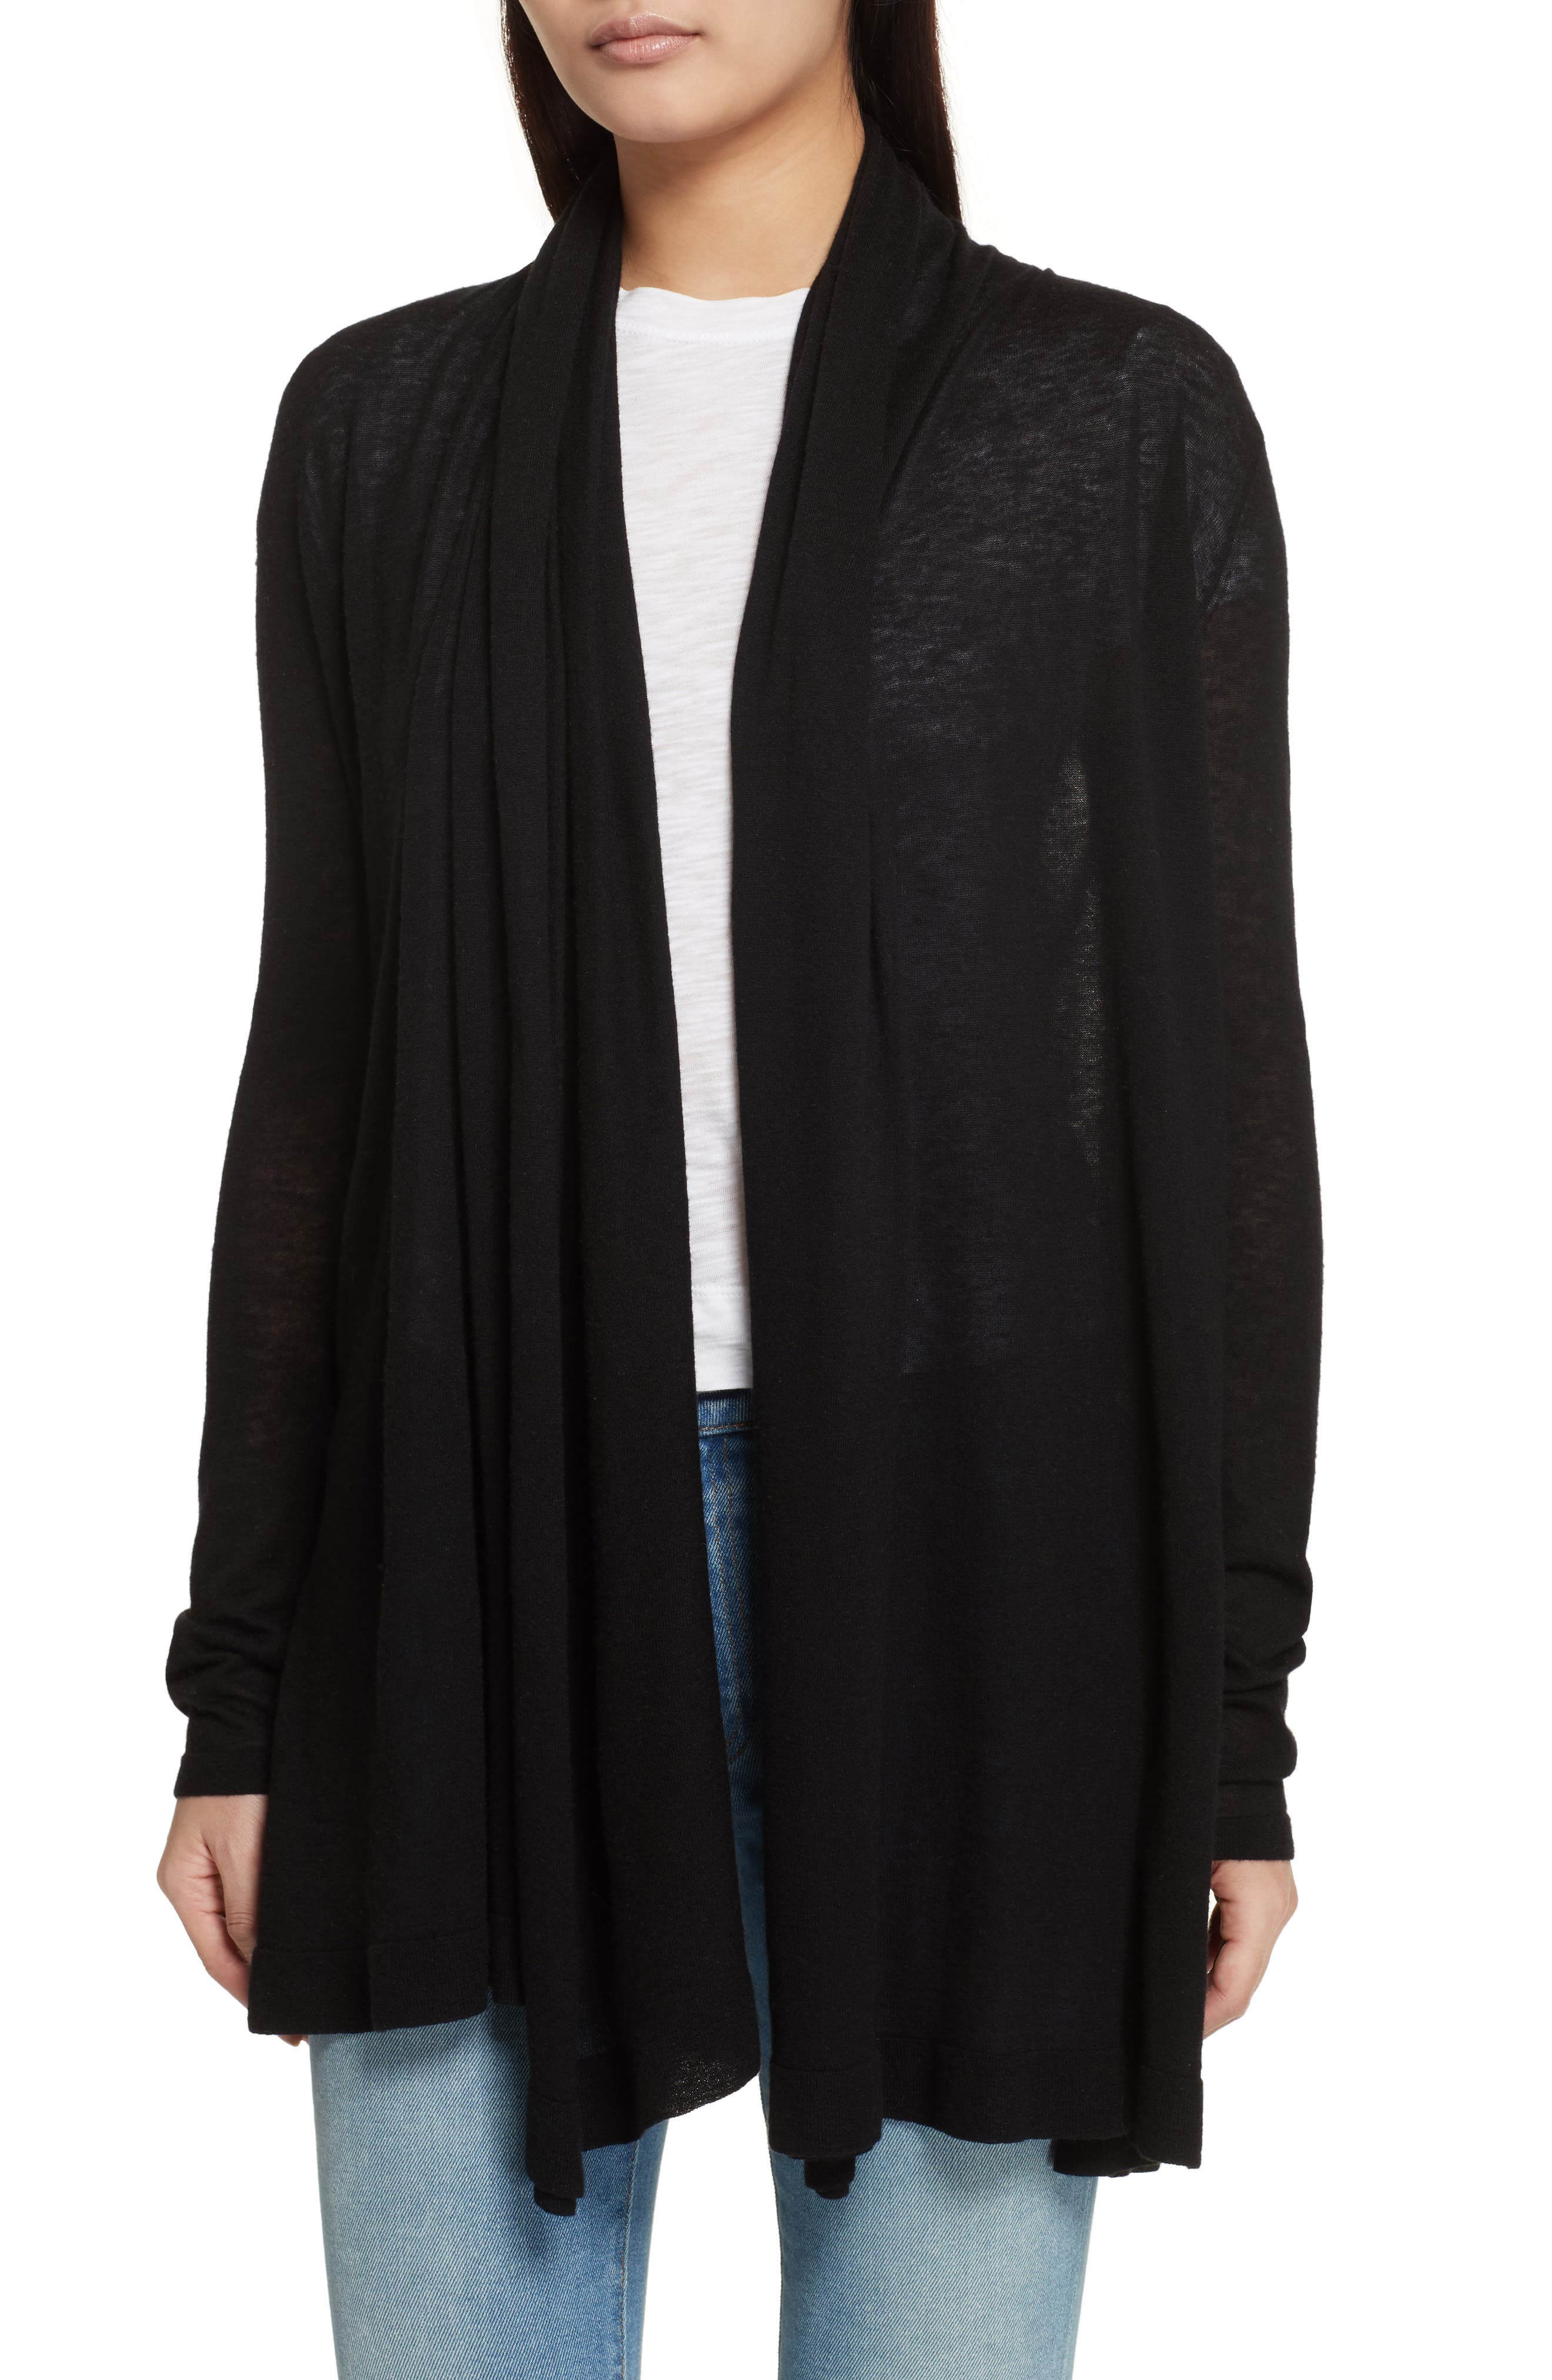 THEORY,                             Featherweight Cashmere Cardigan,                             Main thumbnail 1, color,                             001